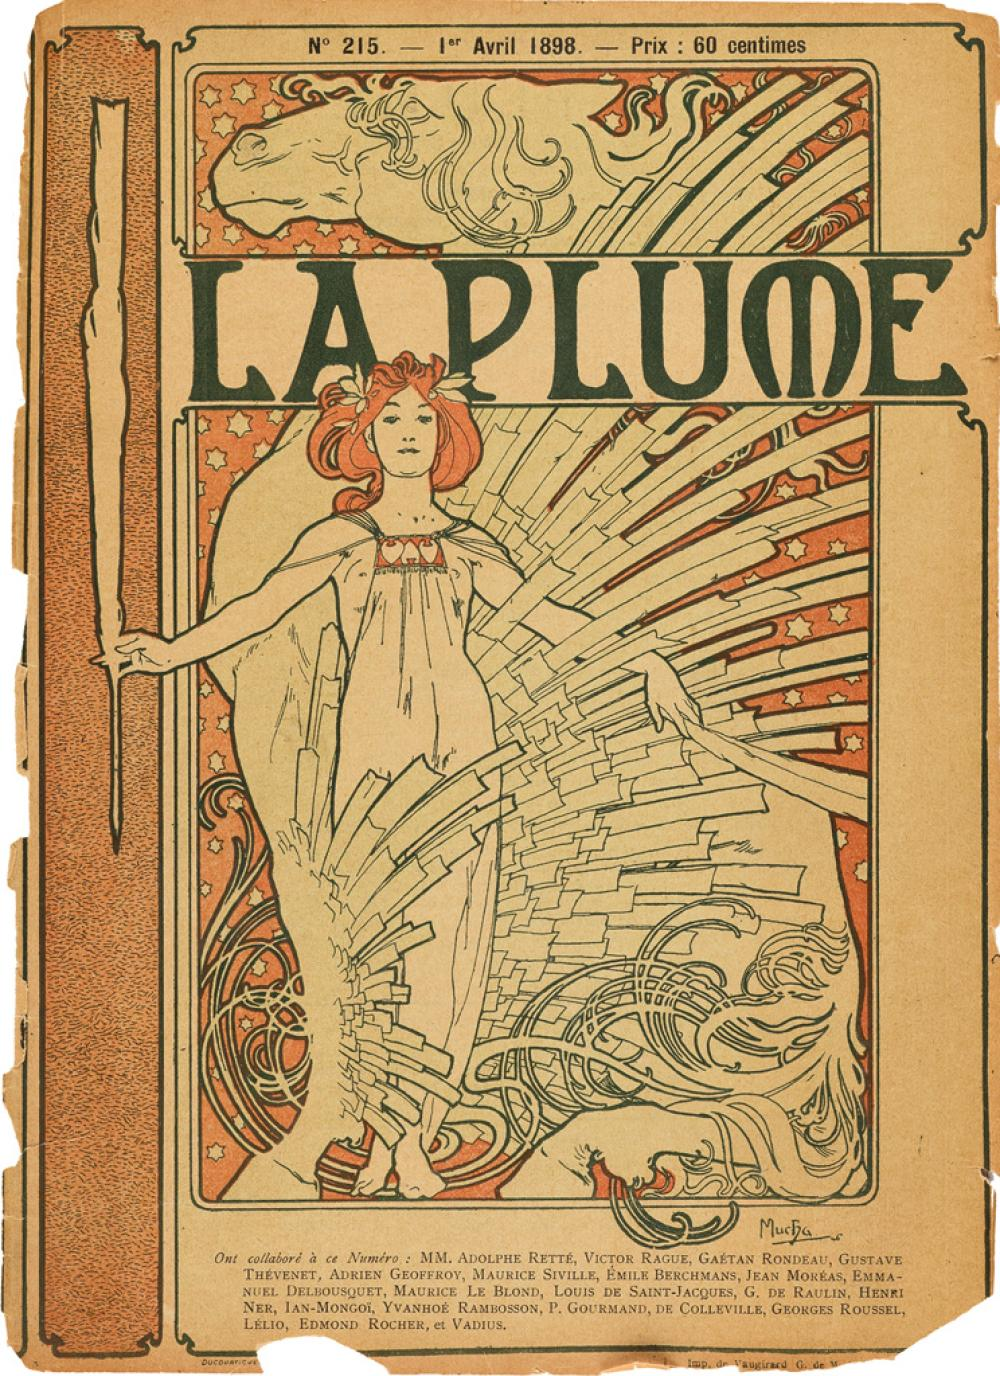 ALPHONSE MUCHA (1860-1939). LA PLUME. Magazine, April 1, 1898. 10x7 inches, 25x19 cm. Imprimerie de Vaugirard, Paris.